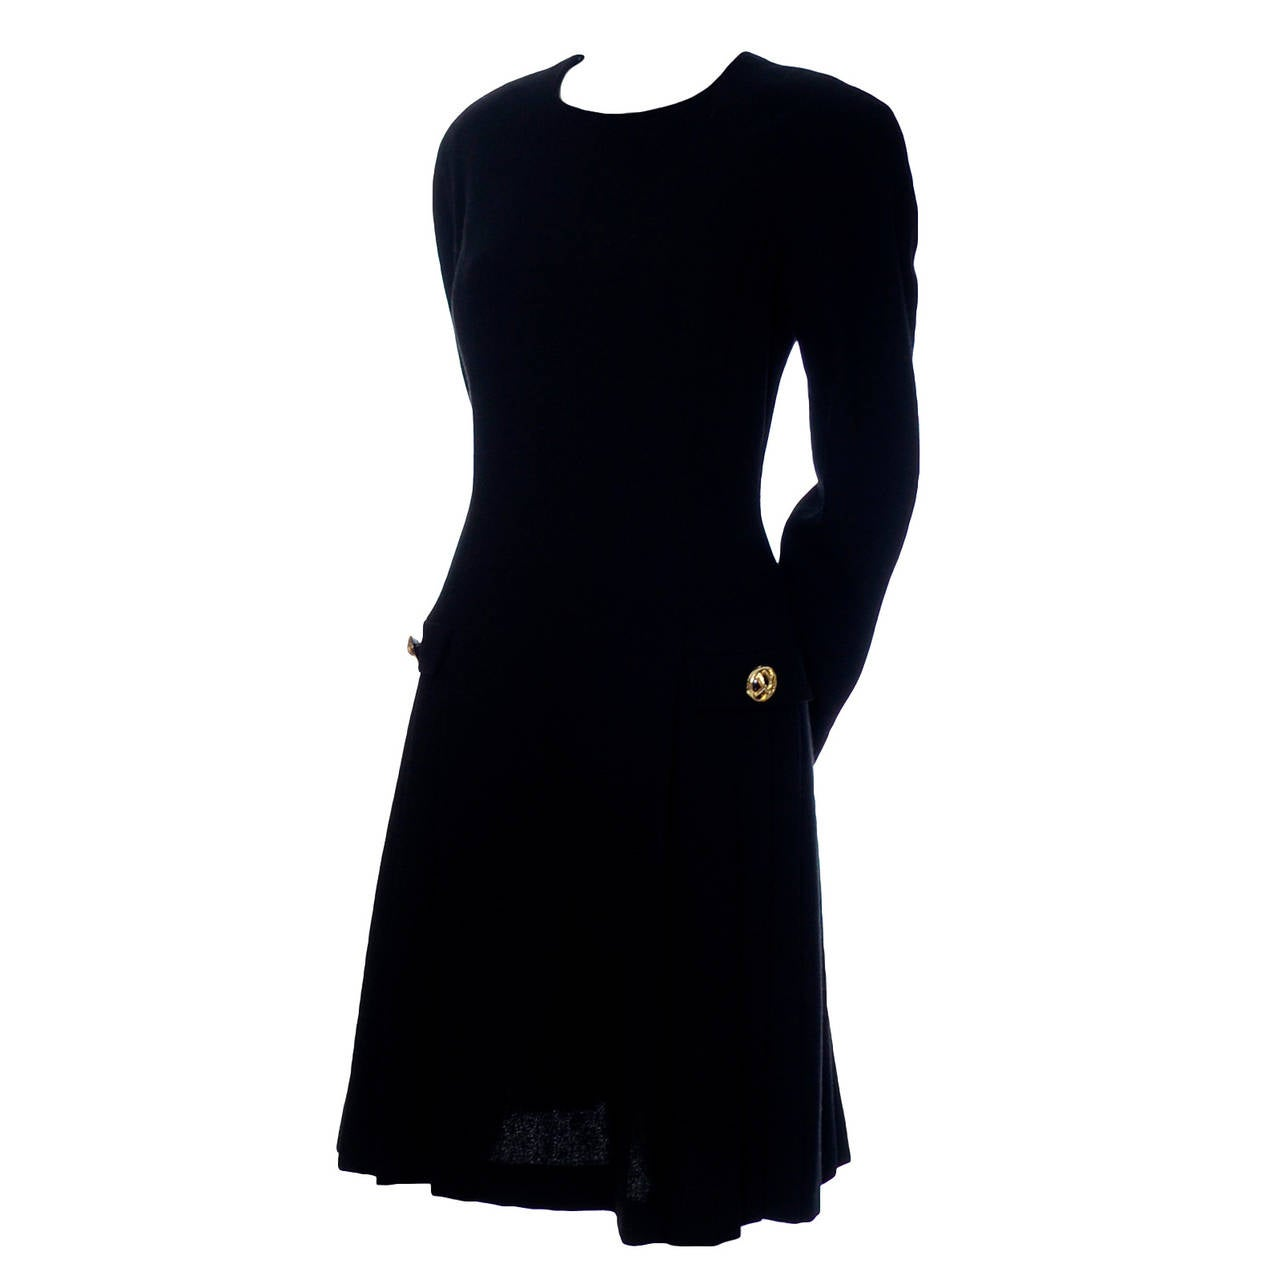 Arnold Scaasi Vintage Dress Black Wool Knit Drop Waist Pleated ...